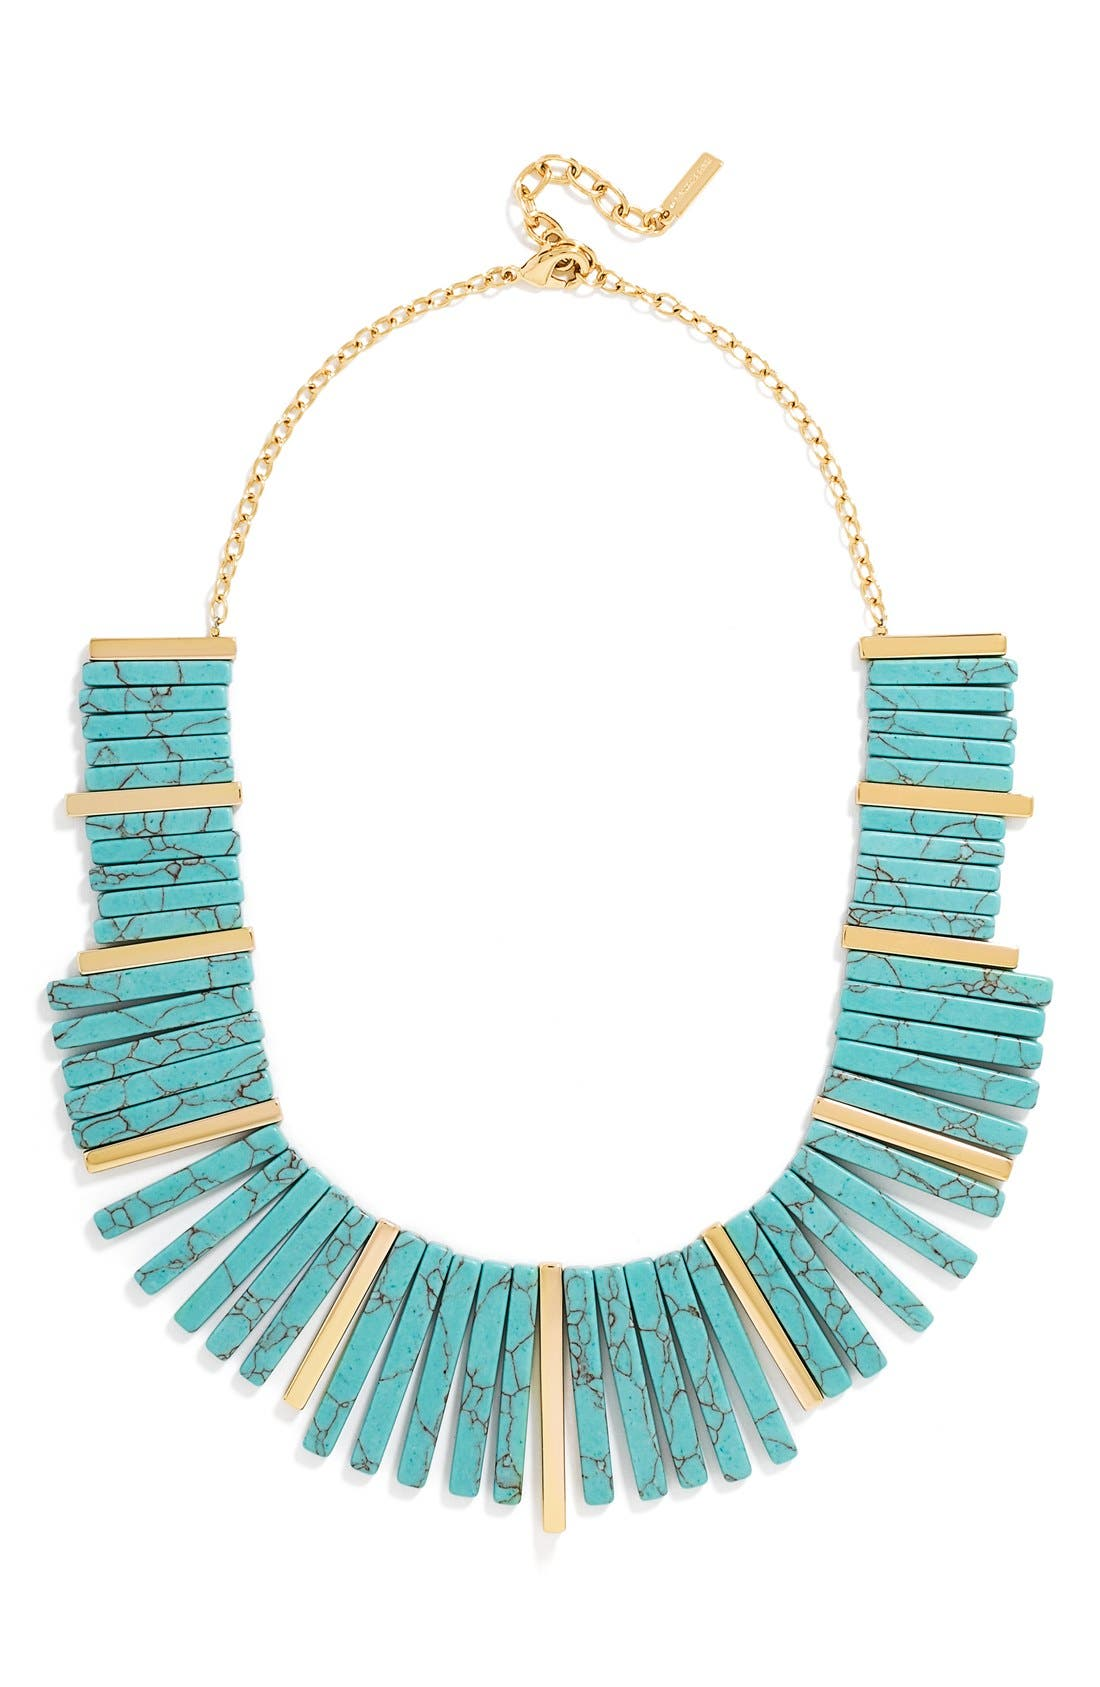 Stone Bib Necklace,                         Main,                         color, Gold/ Turquoise